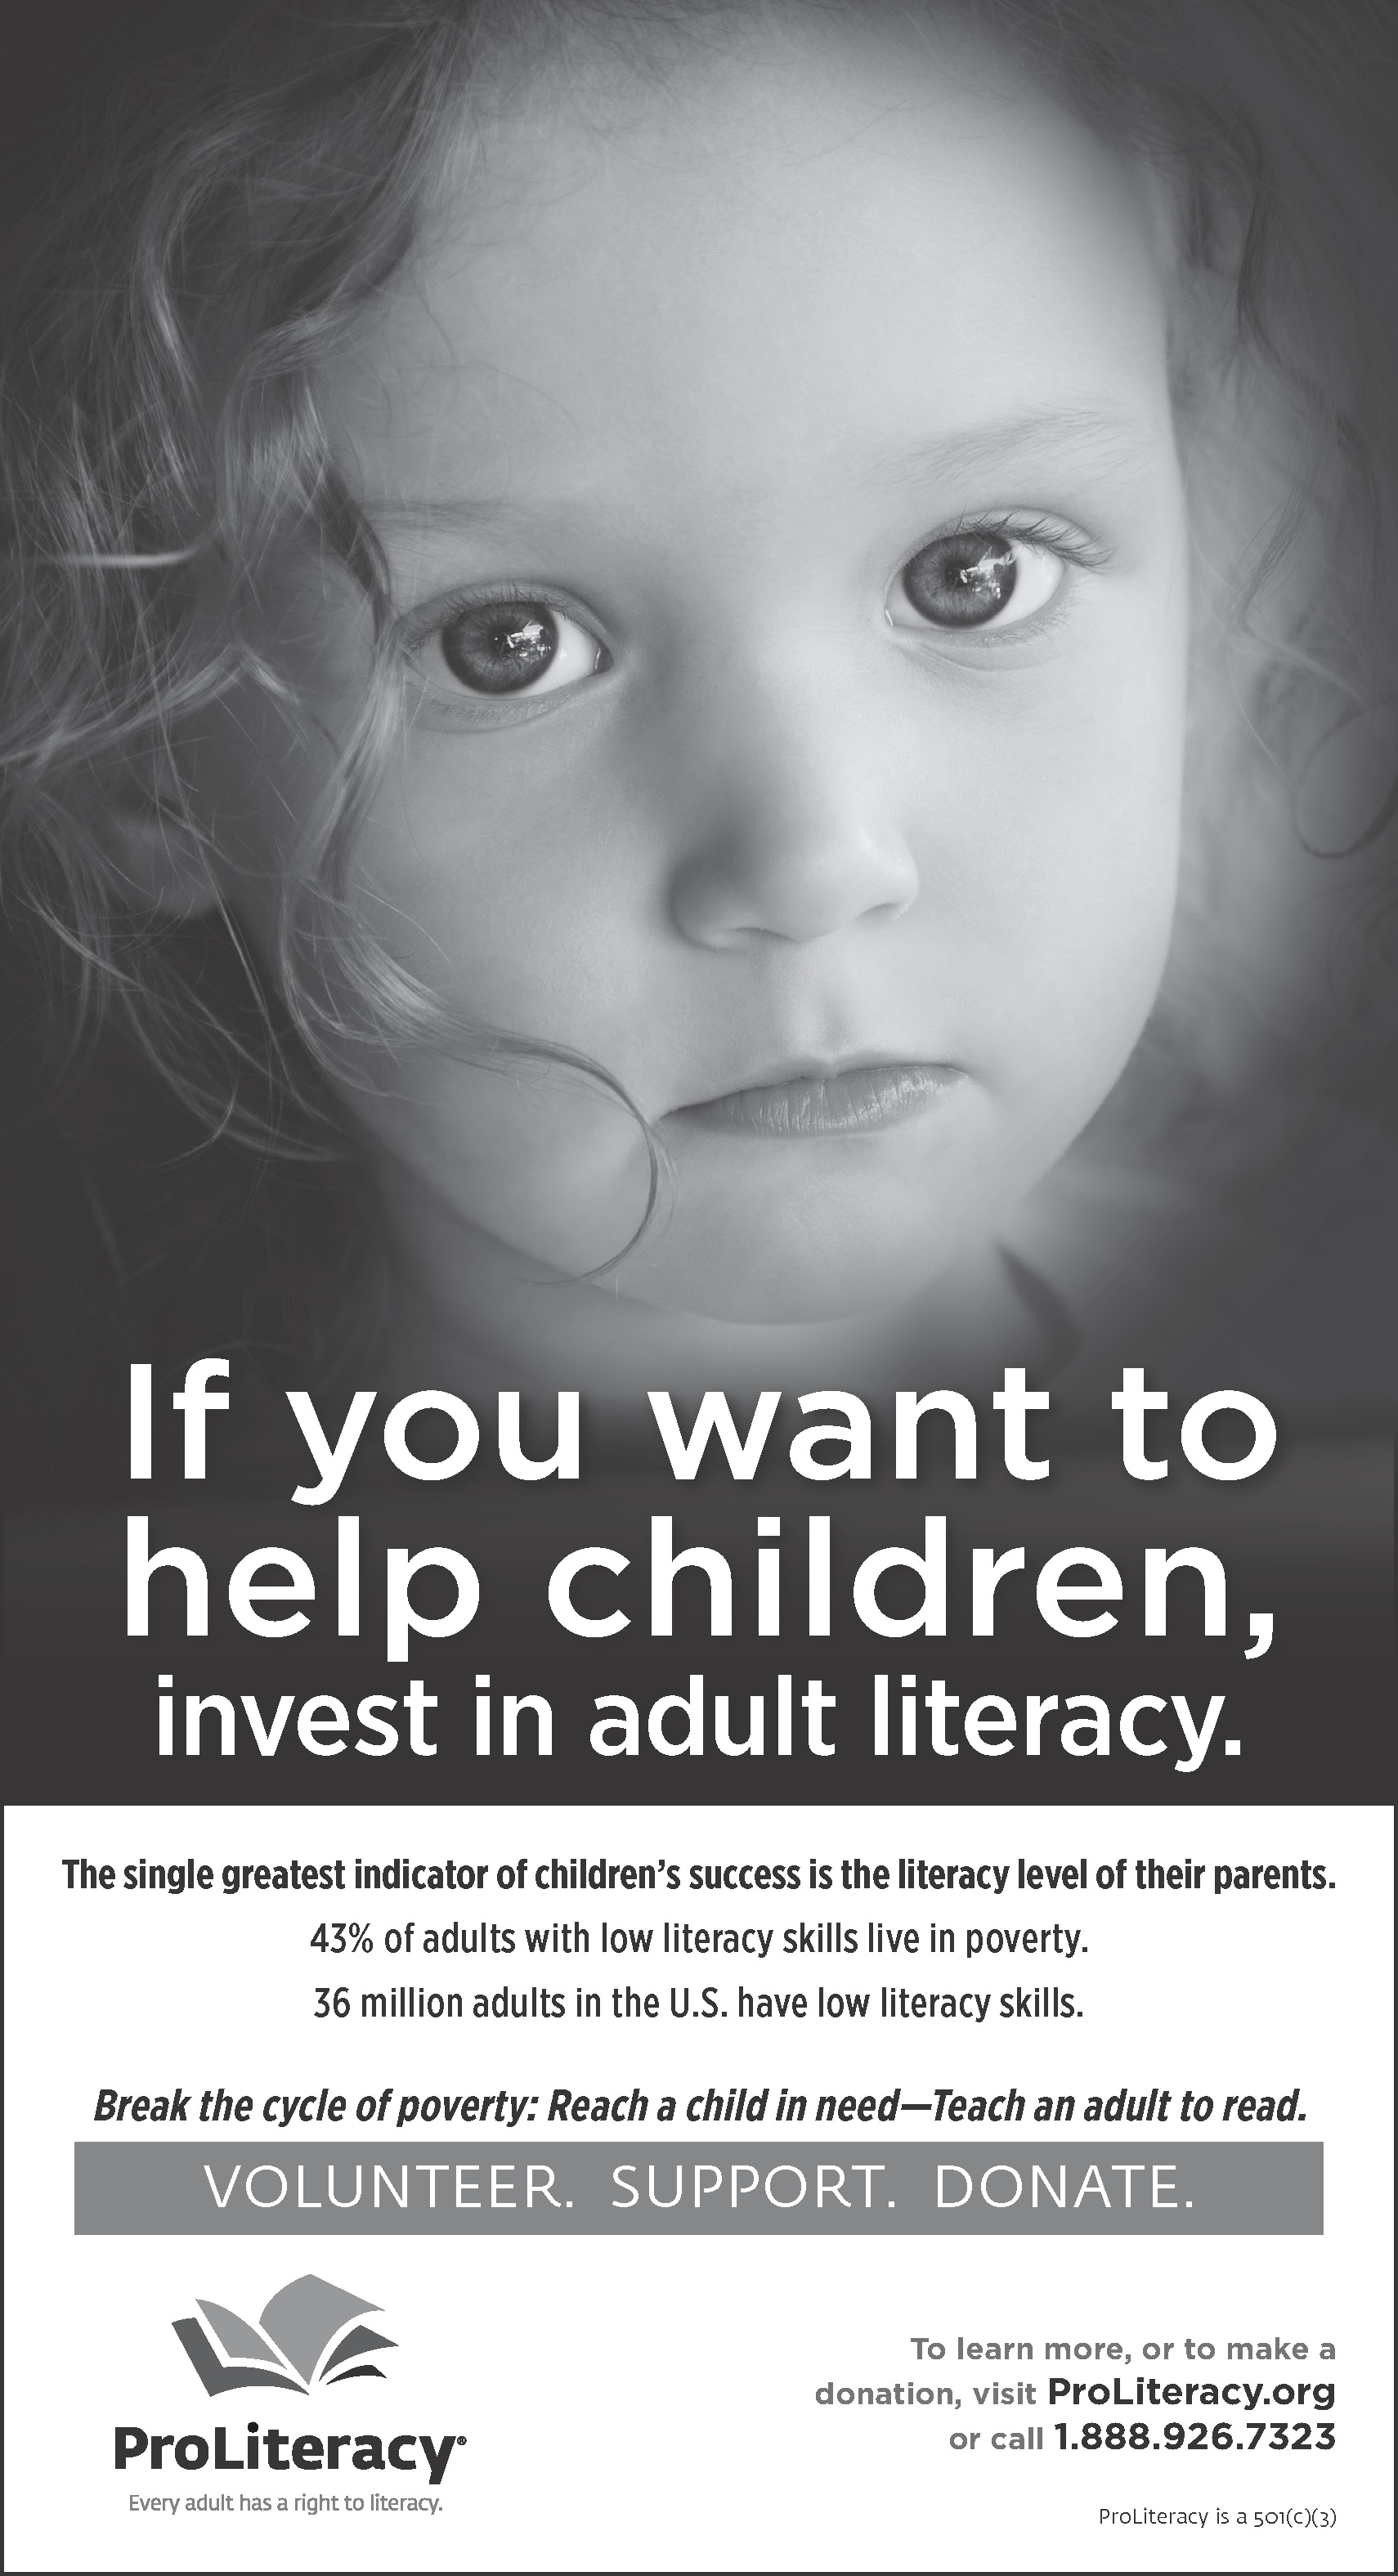 ProLiteracy New York Times literacy advertisement